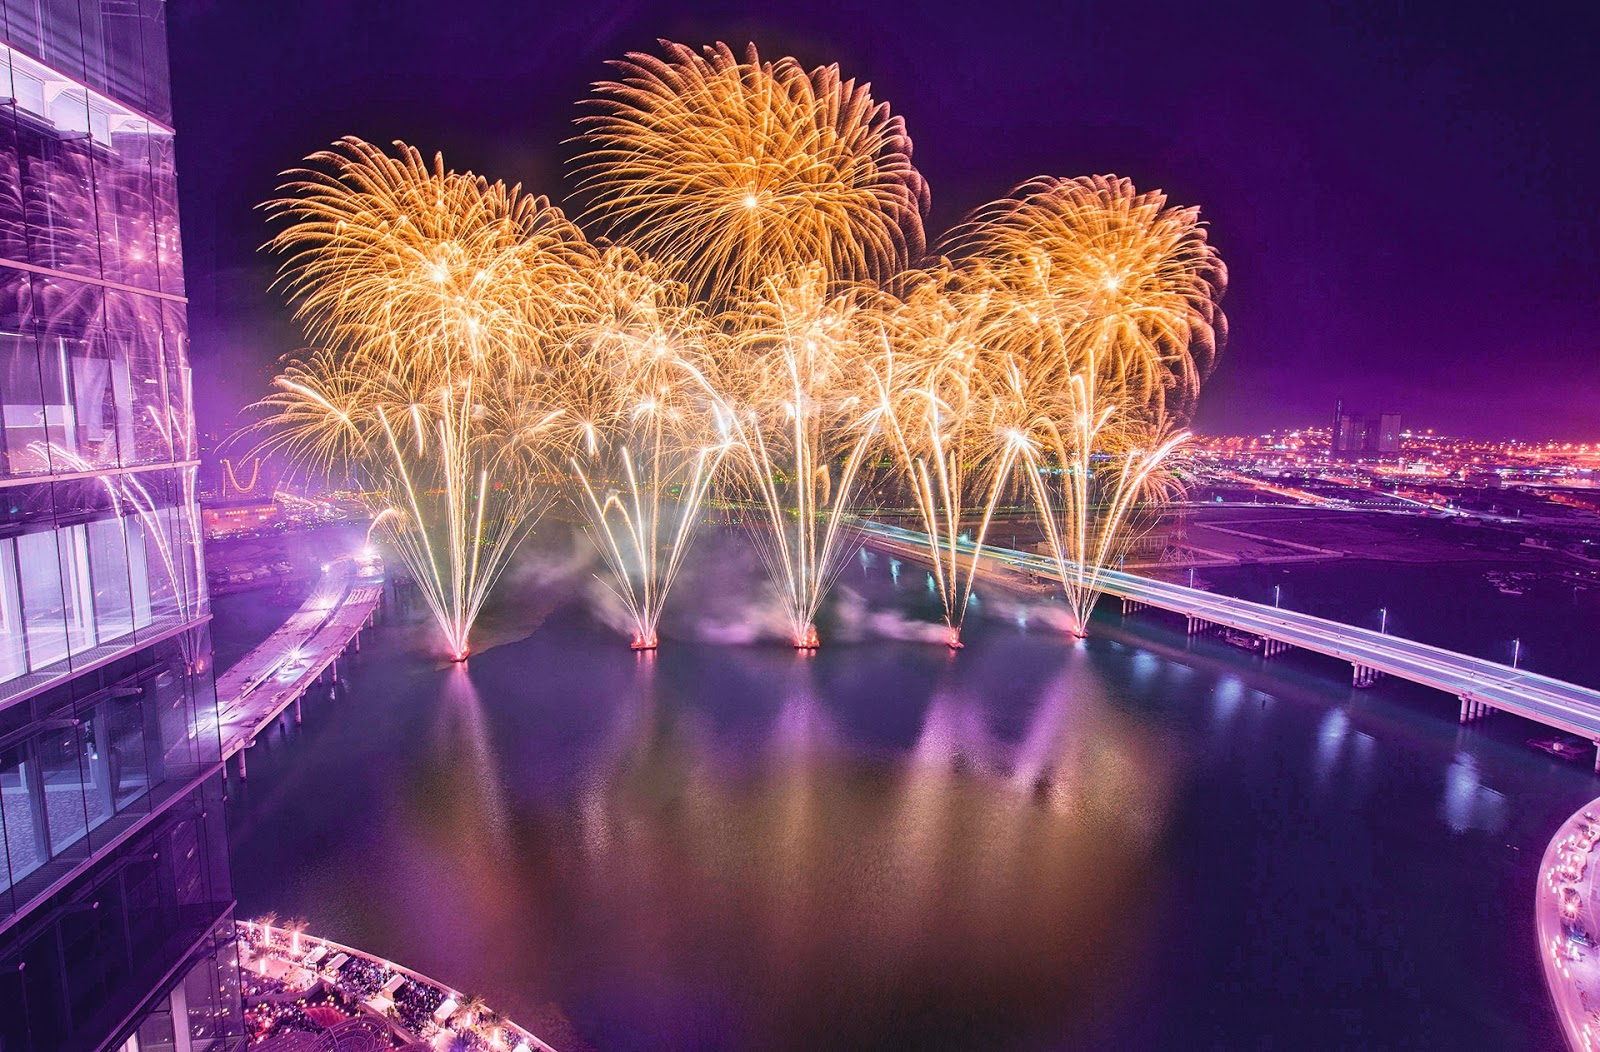 Abu Dhabi New Years Eve 2021 Celebration: Where to Go, Where to Stay for NYE 2021 in Abu Dhabi UAE